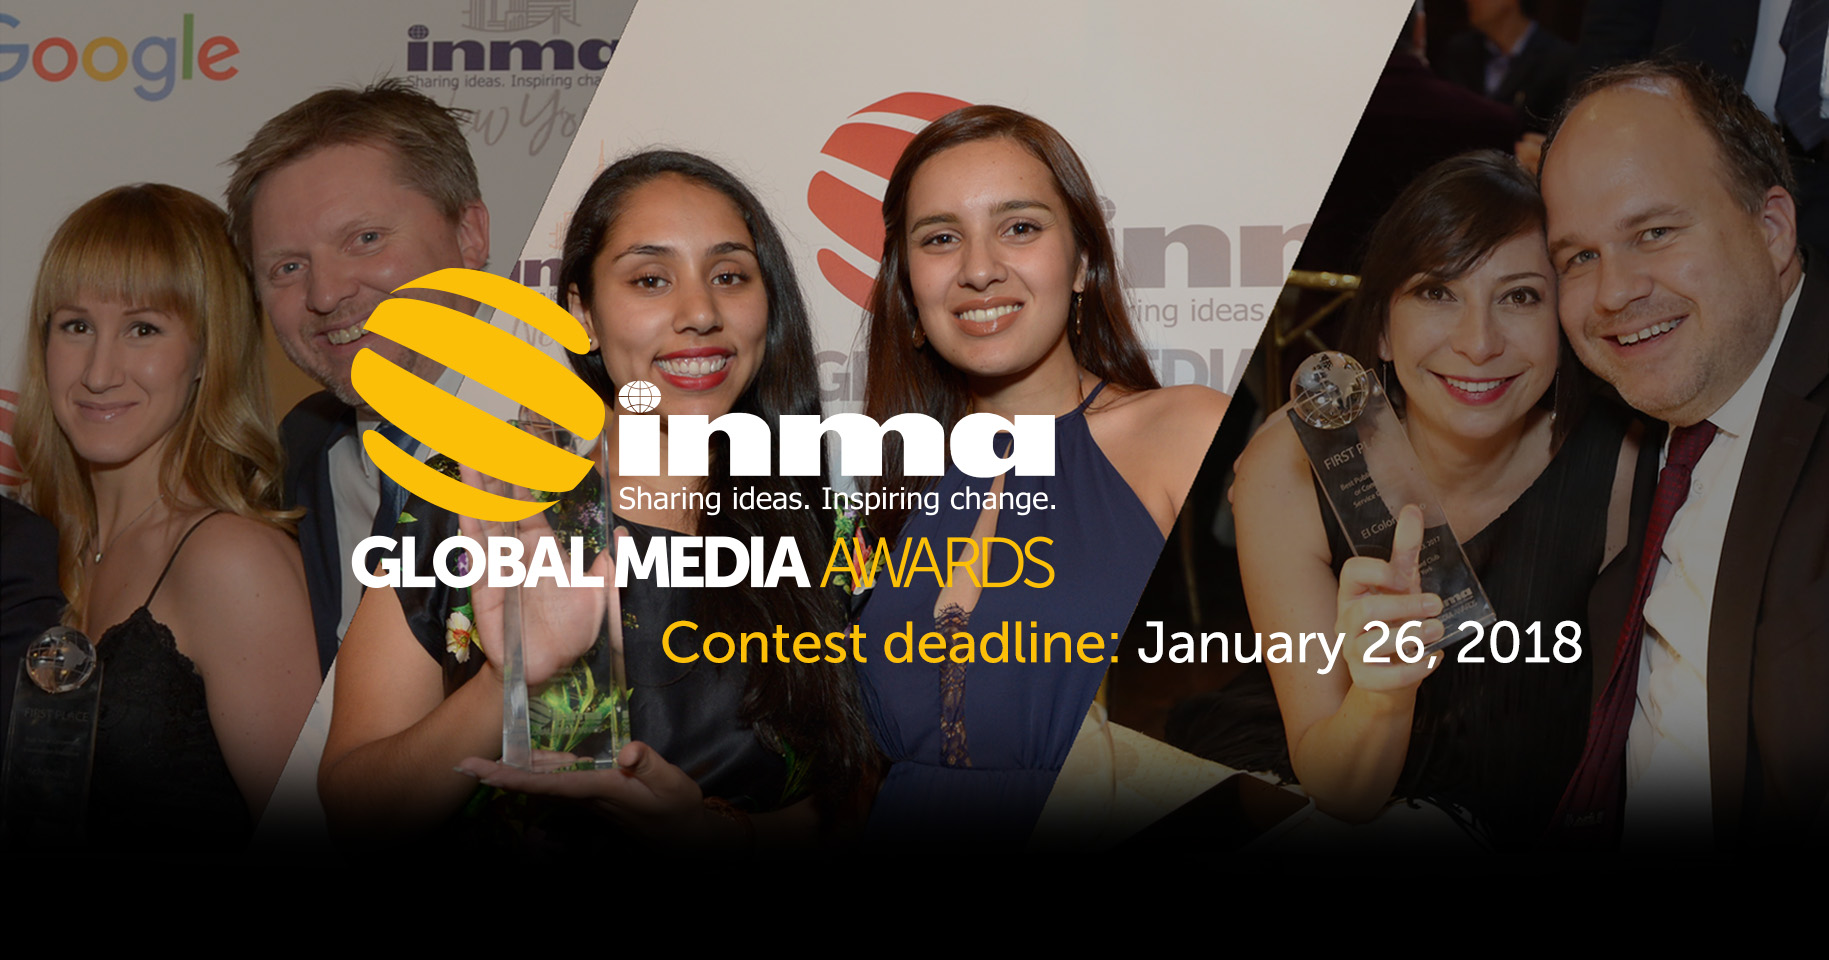 INMA Global Media Awards deadline is Friday